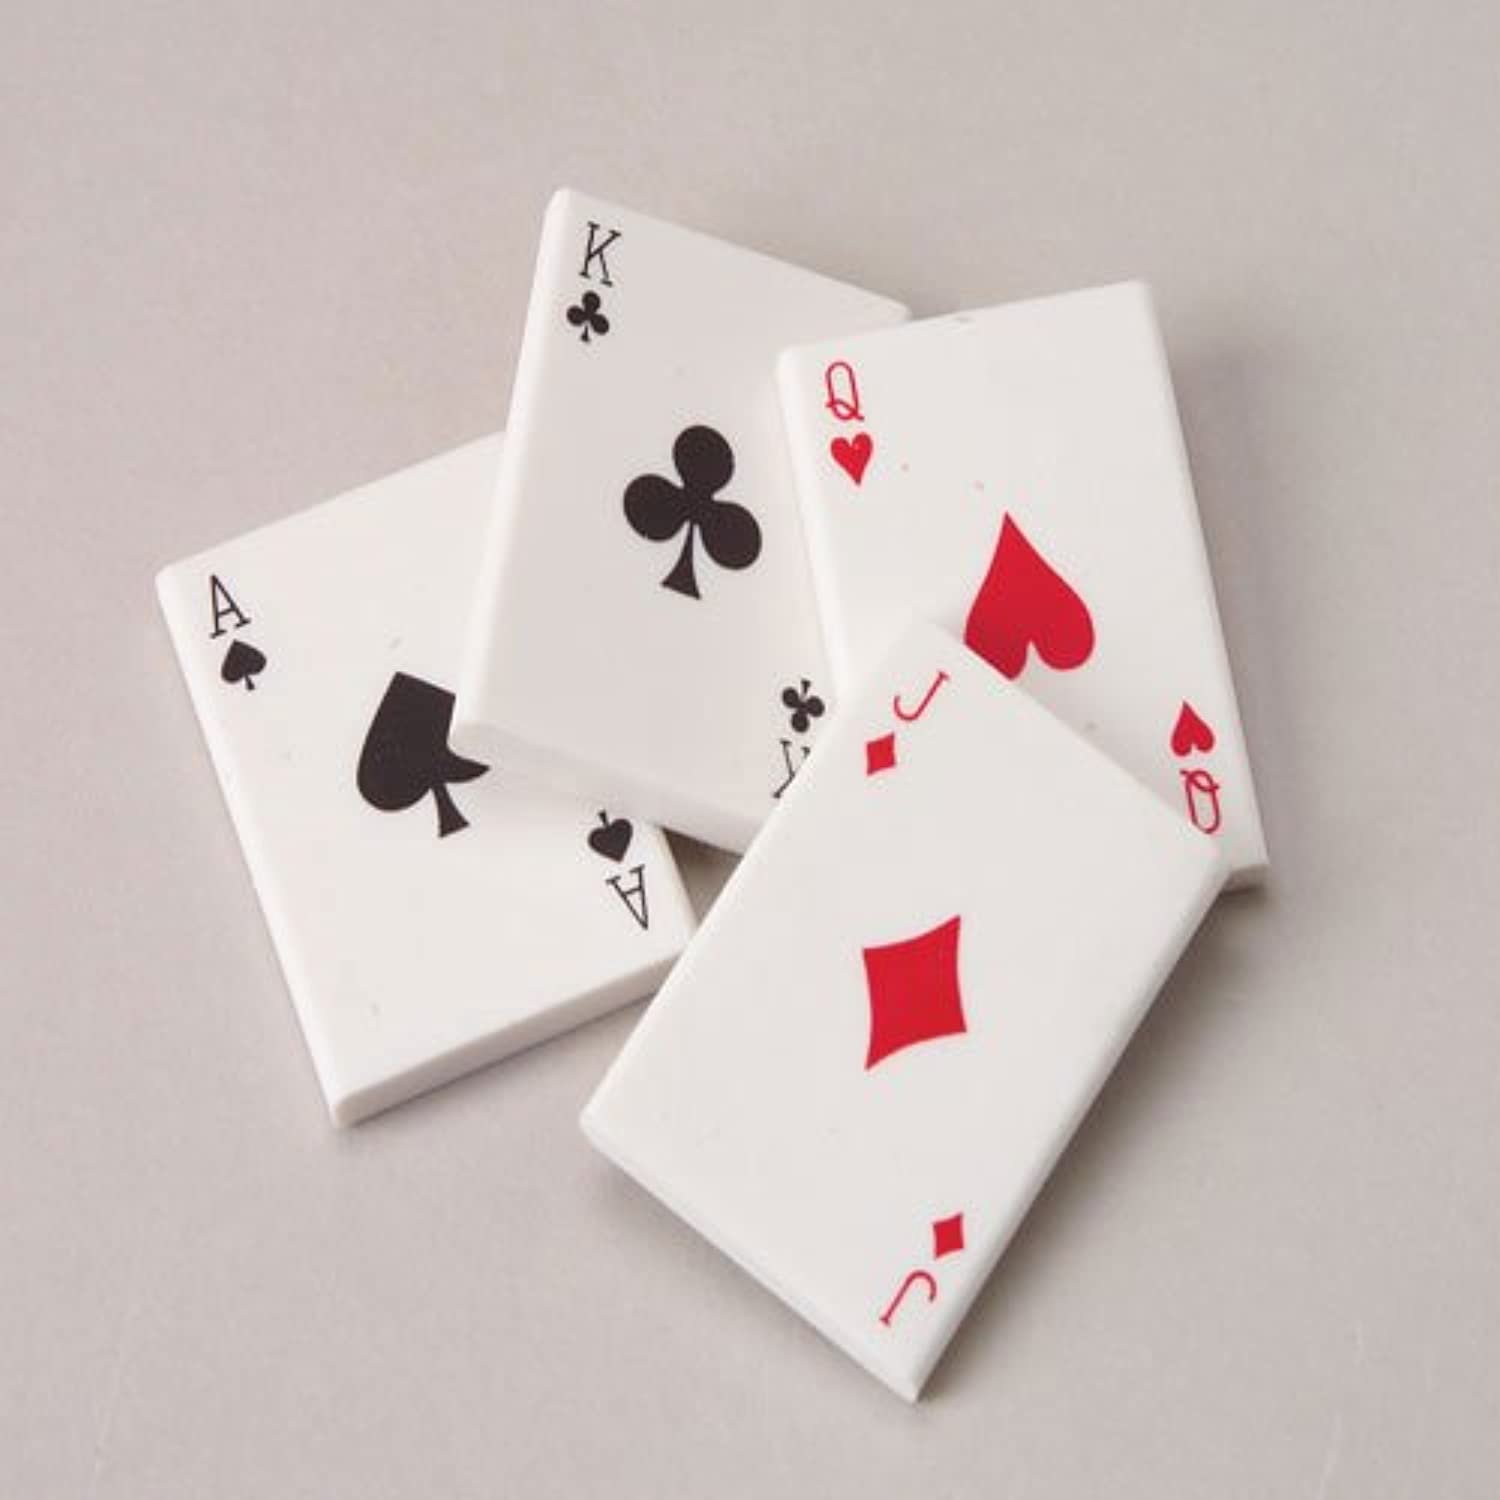 US Toy Company LM159 Mini Playing Card Erasers36Bx